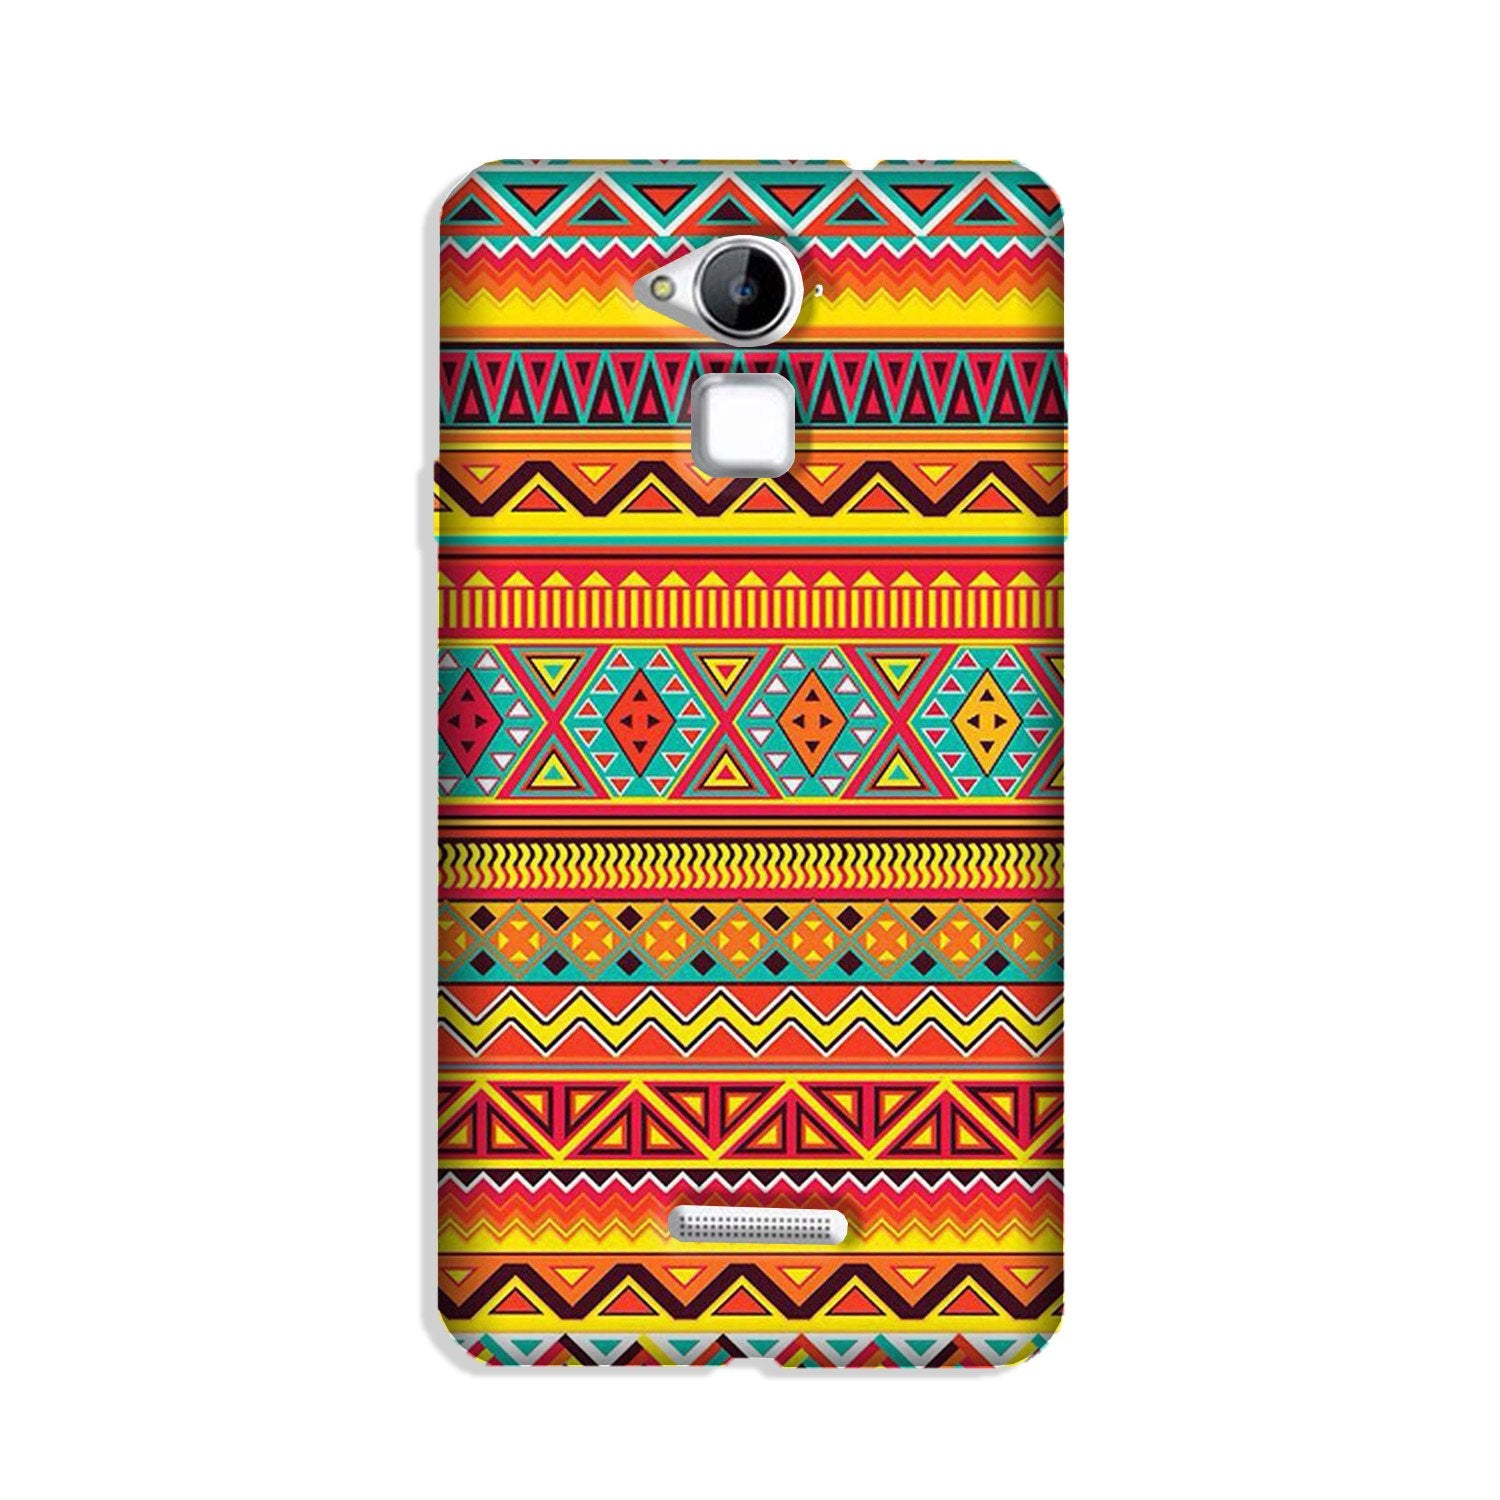 Zigzag line pattern Case for Coolpad Note 3